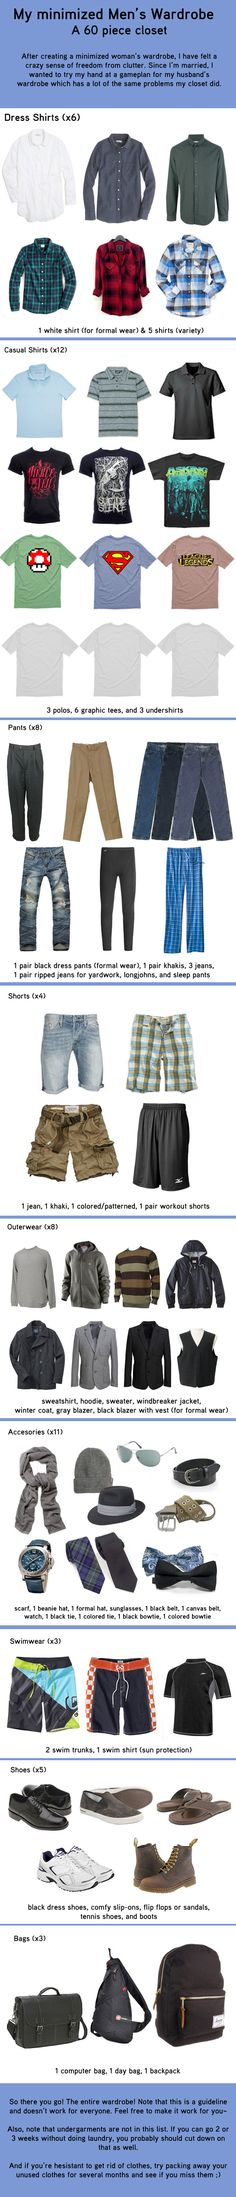 Men's minimized wardrobe!